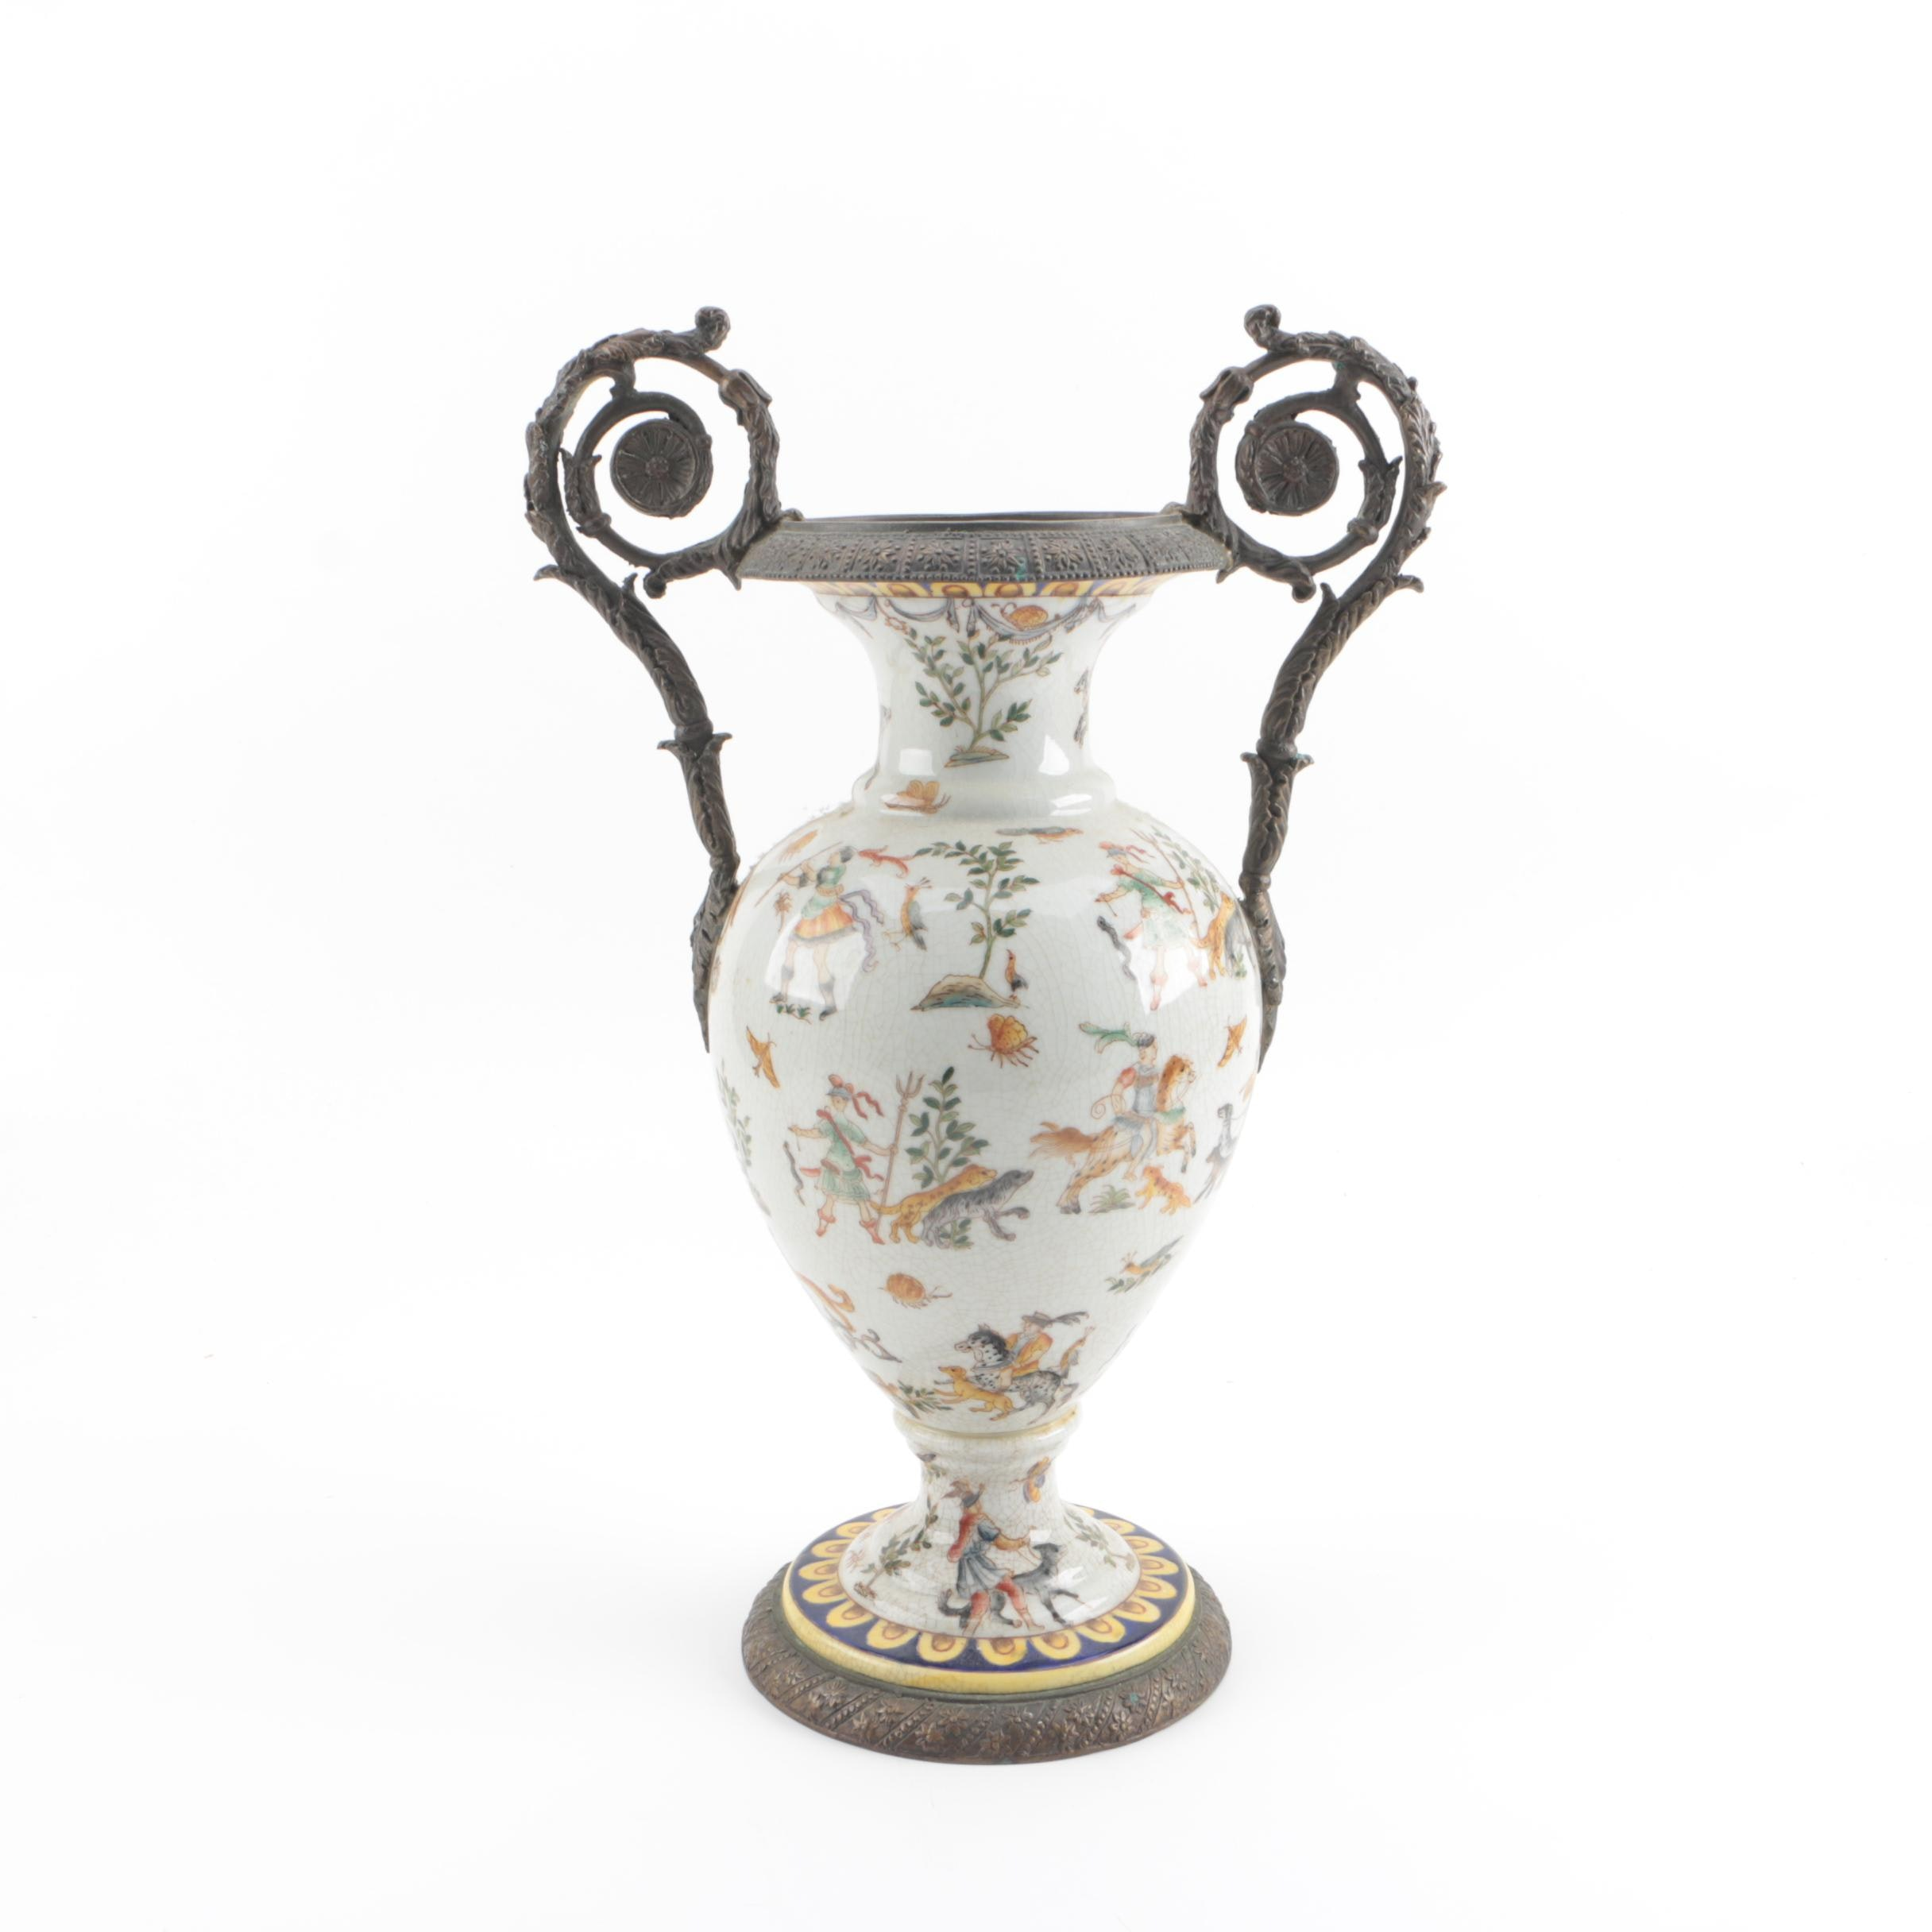 Contemporary Chinese Ceramic Urn with Metal Mounts